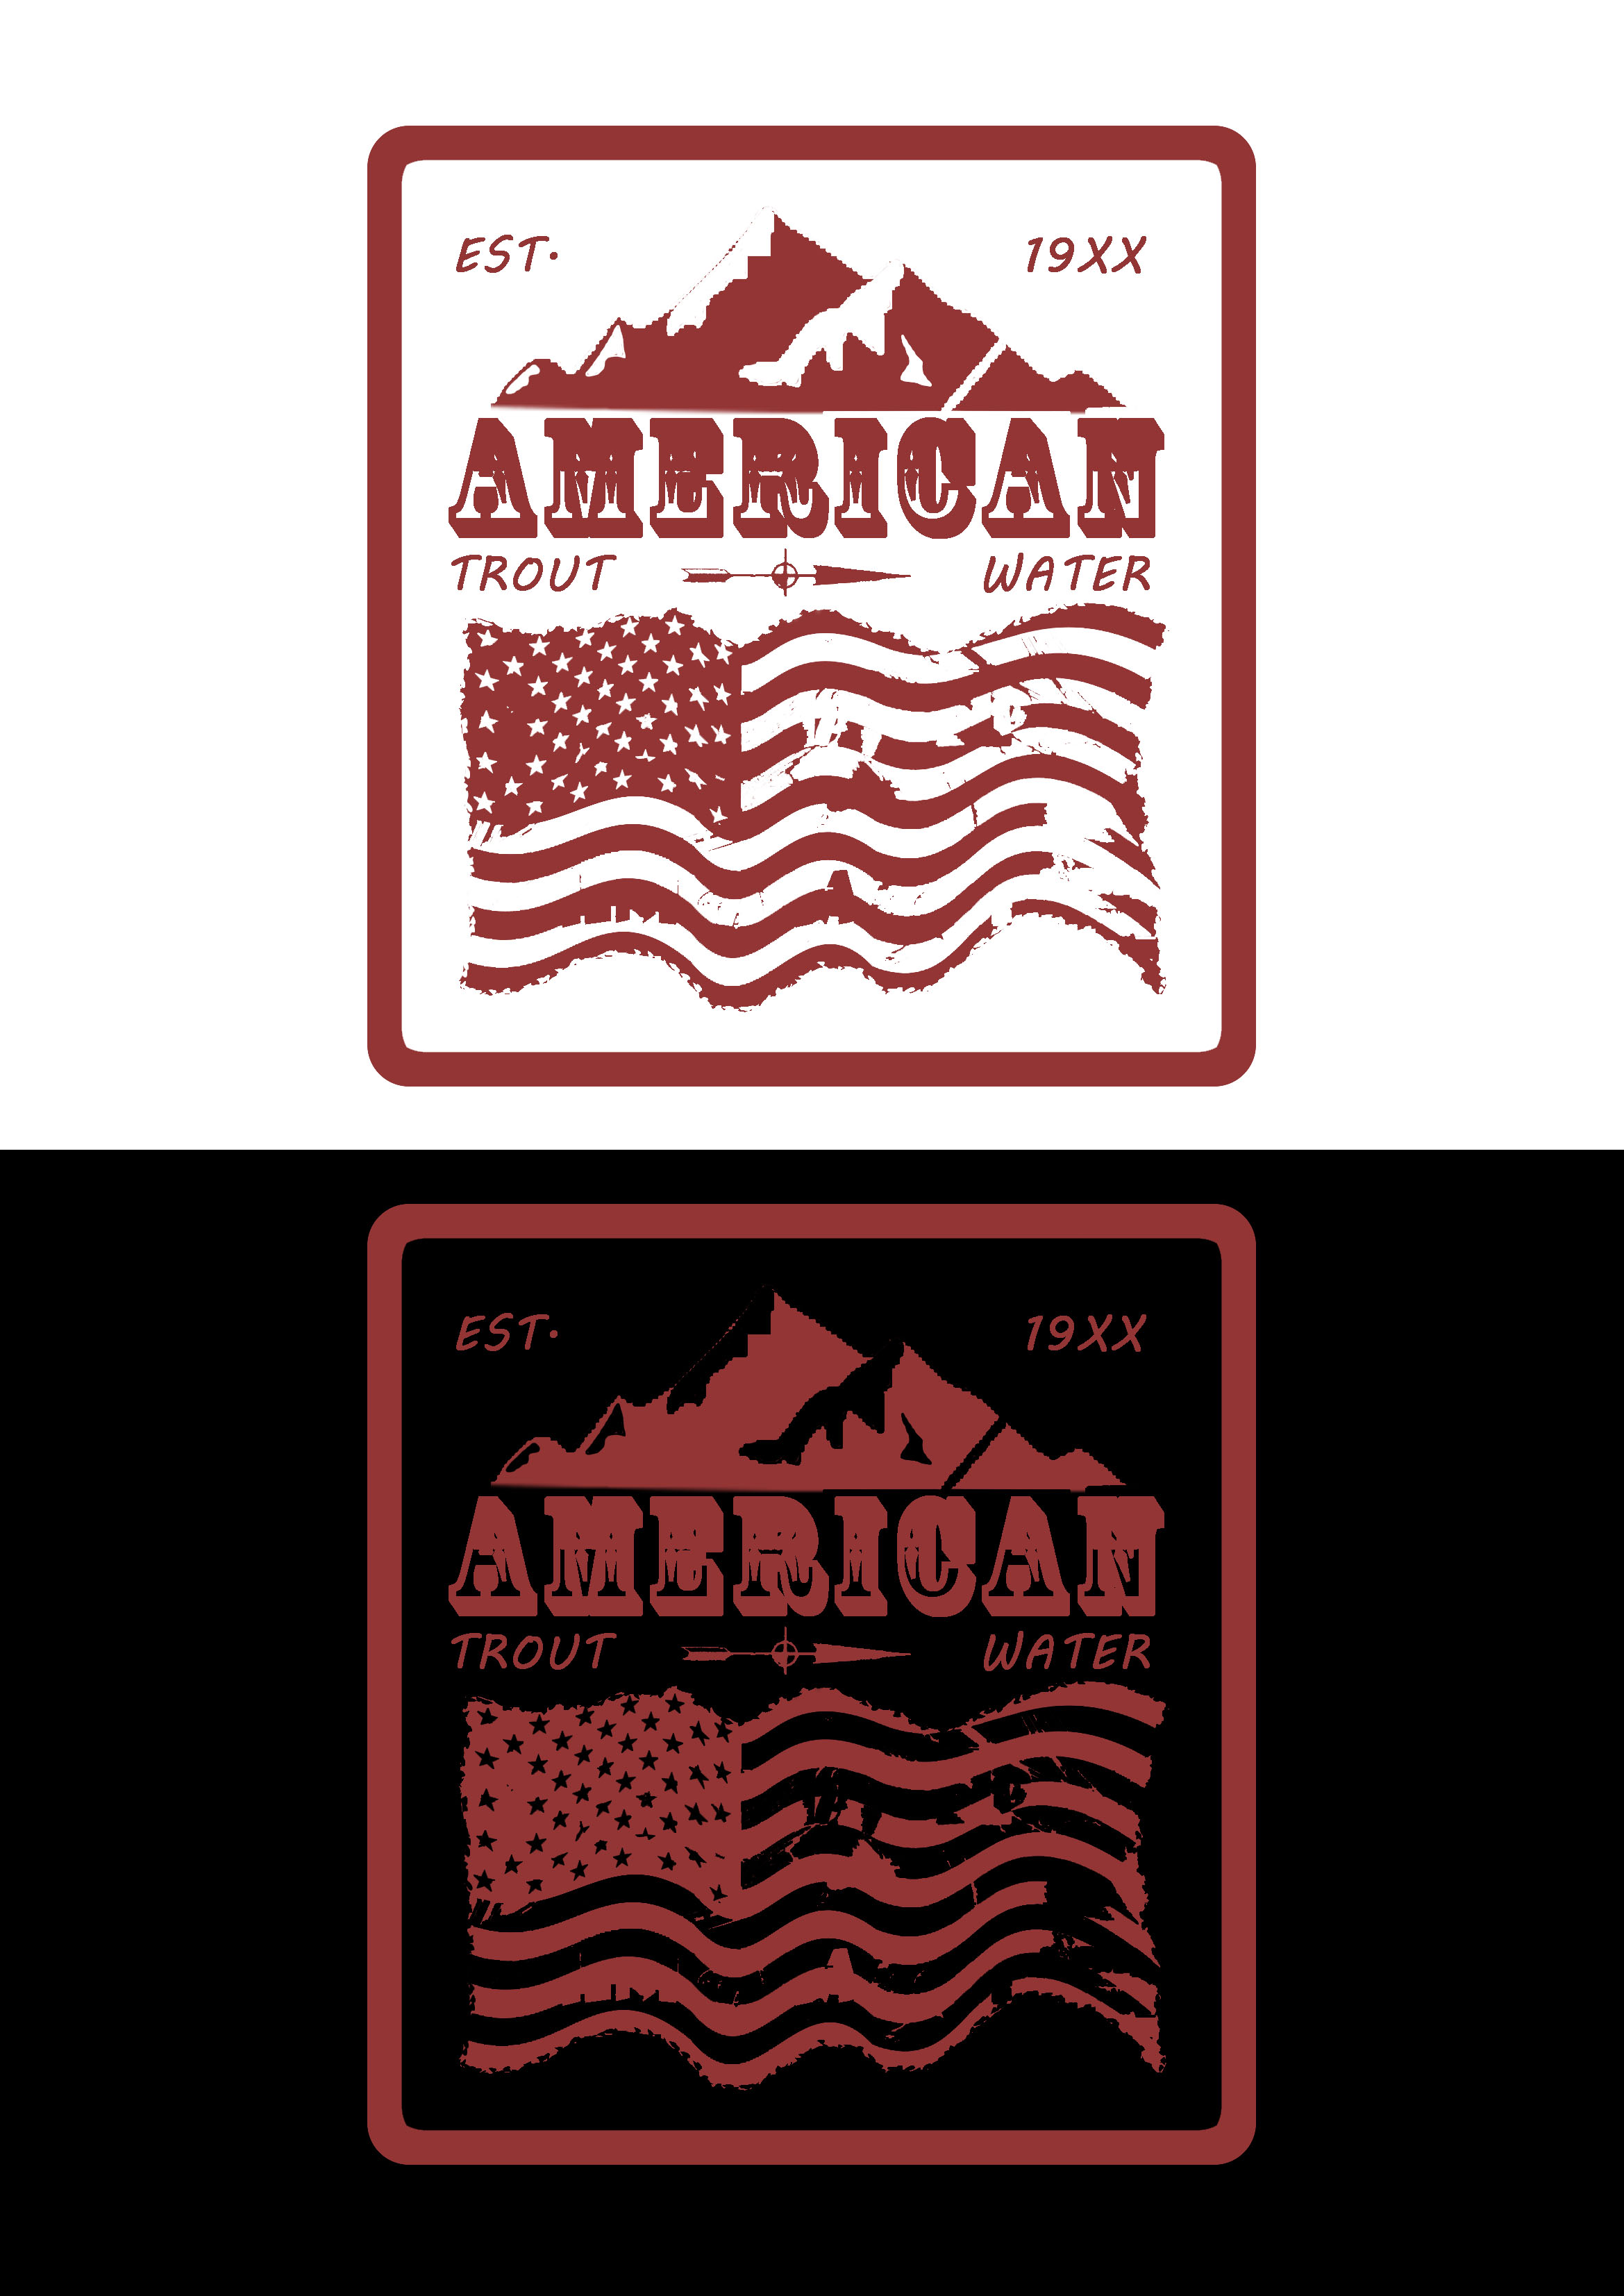 Logo Design by JSDESIGNGROUP - Entry No. 12 in the Logo Design Contest American Trout Water Logo Design.